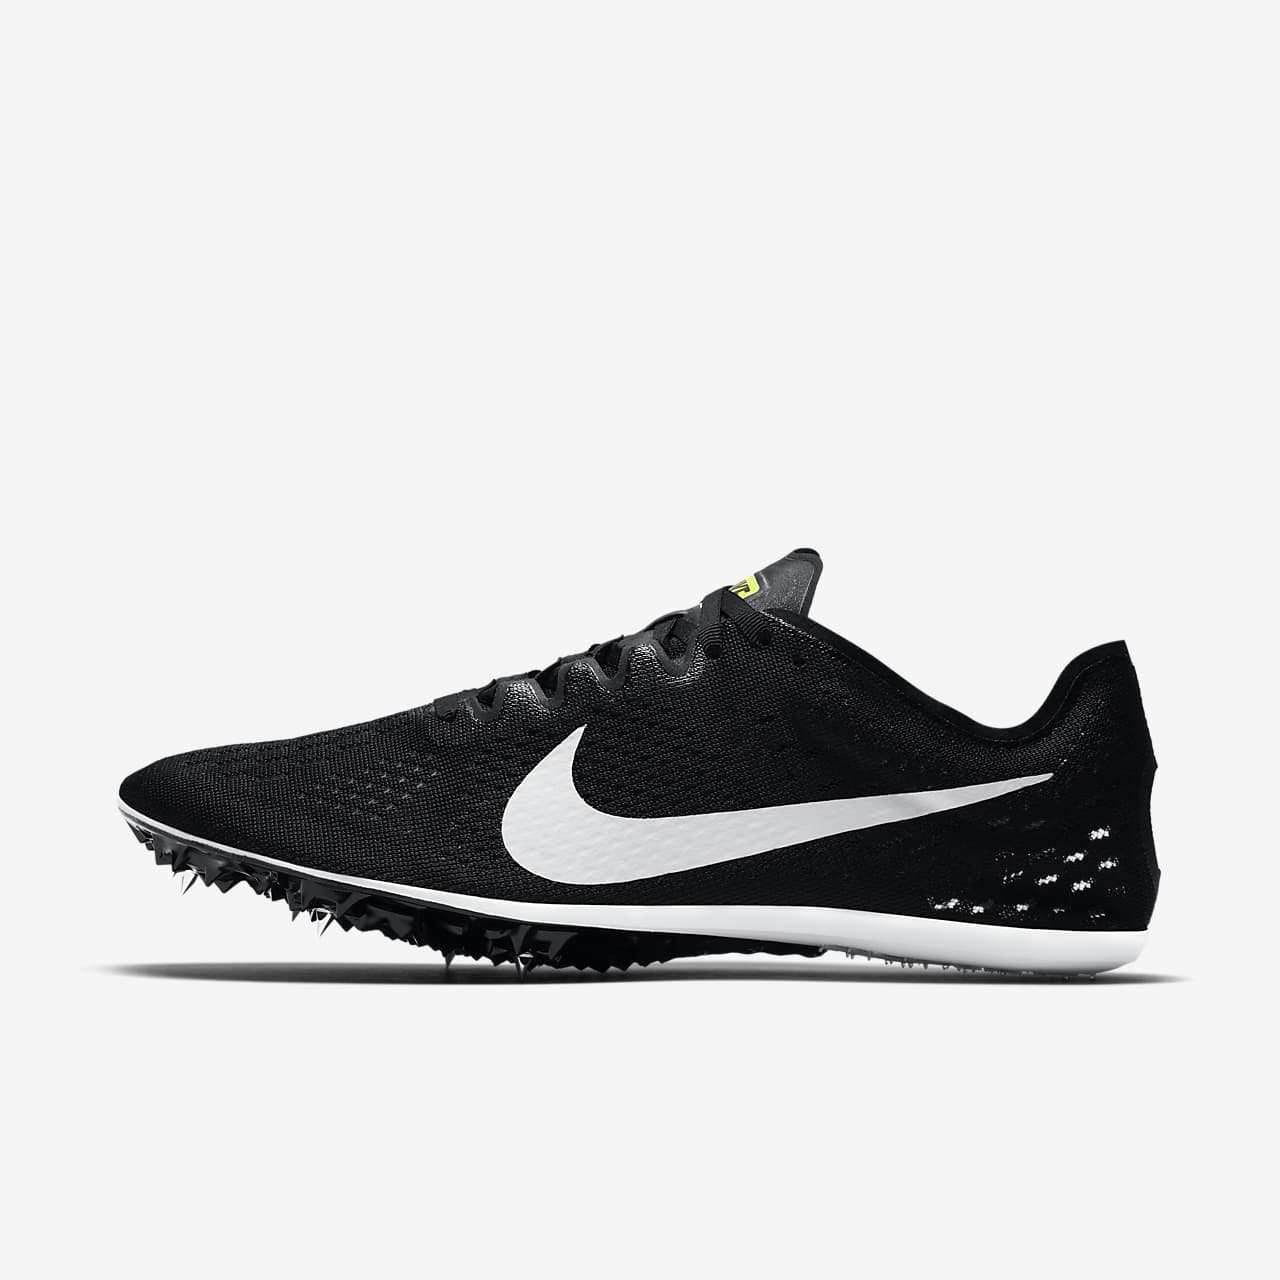 Nike Zoom Victory Elite 2 Racing Spike